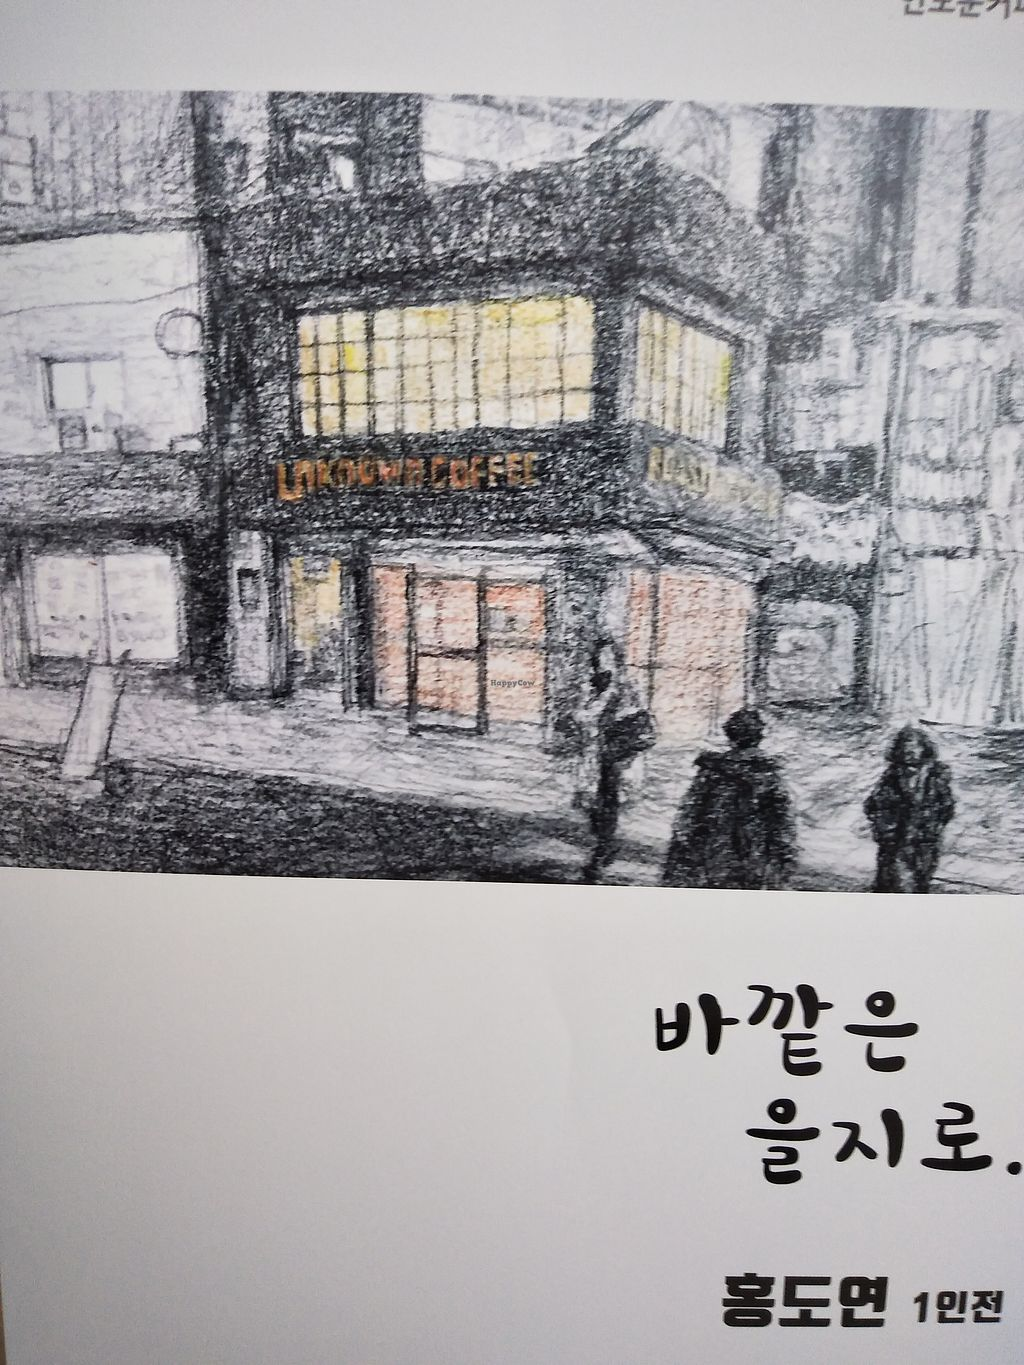 """Photo of Unknown Coffee - 언노운커피  by <a href=""""/members/profile/MichaelRobinson"""">MichaelRobinson</a> <br/>The place featured in the artists work <br/> March 25, 2018  - <a href='/contact/abuse/image/82116/375790'>Report</a>"""